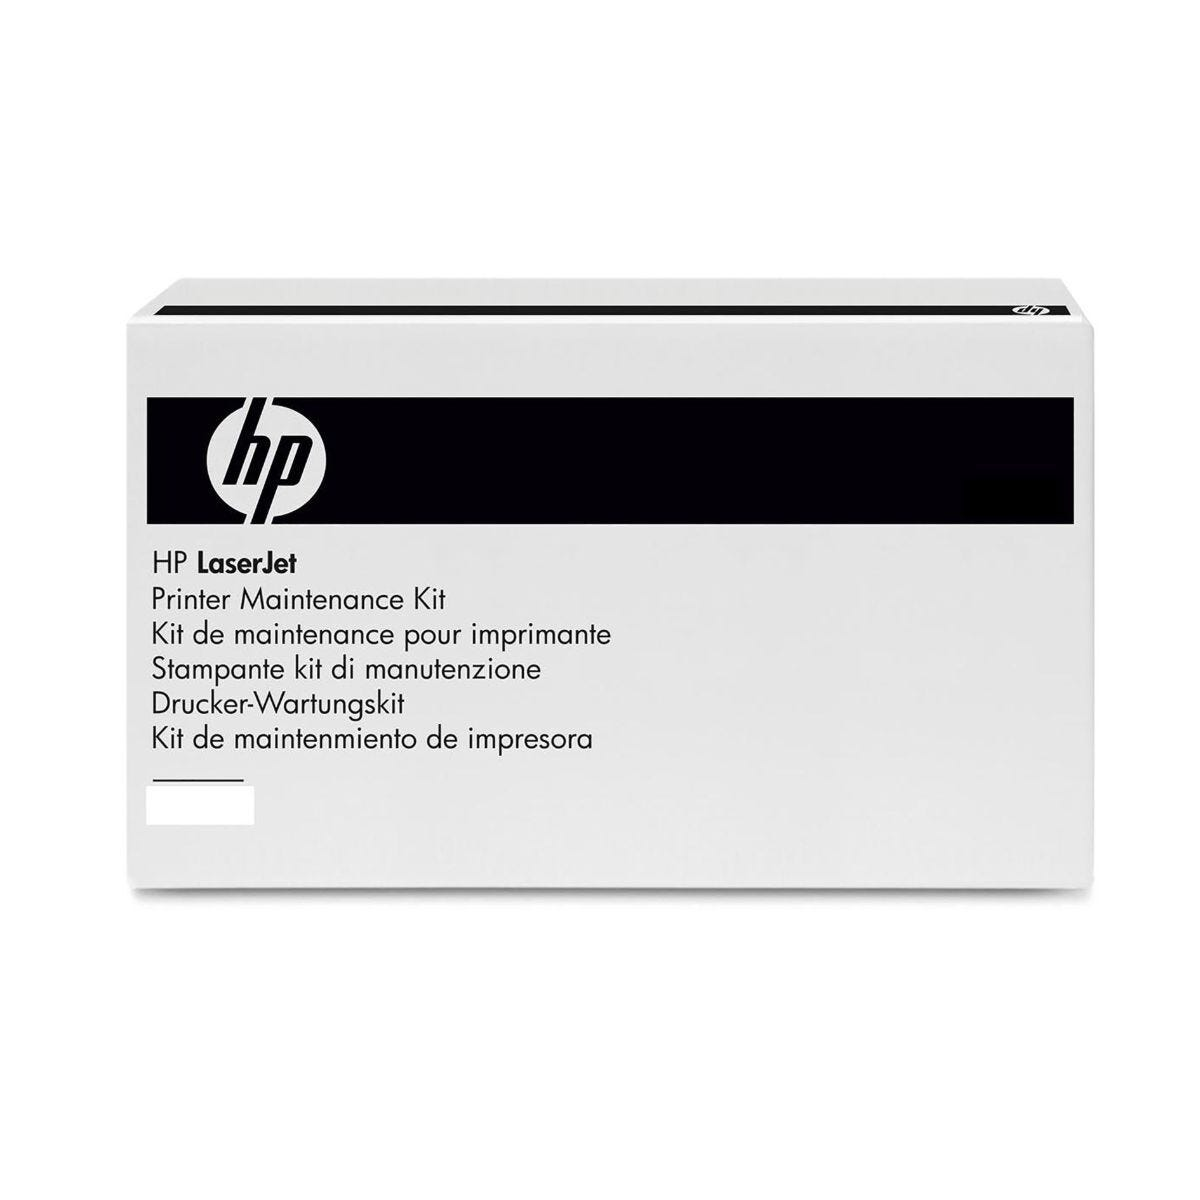 HP LJ9000 9050 Maintenance Kit